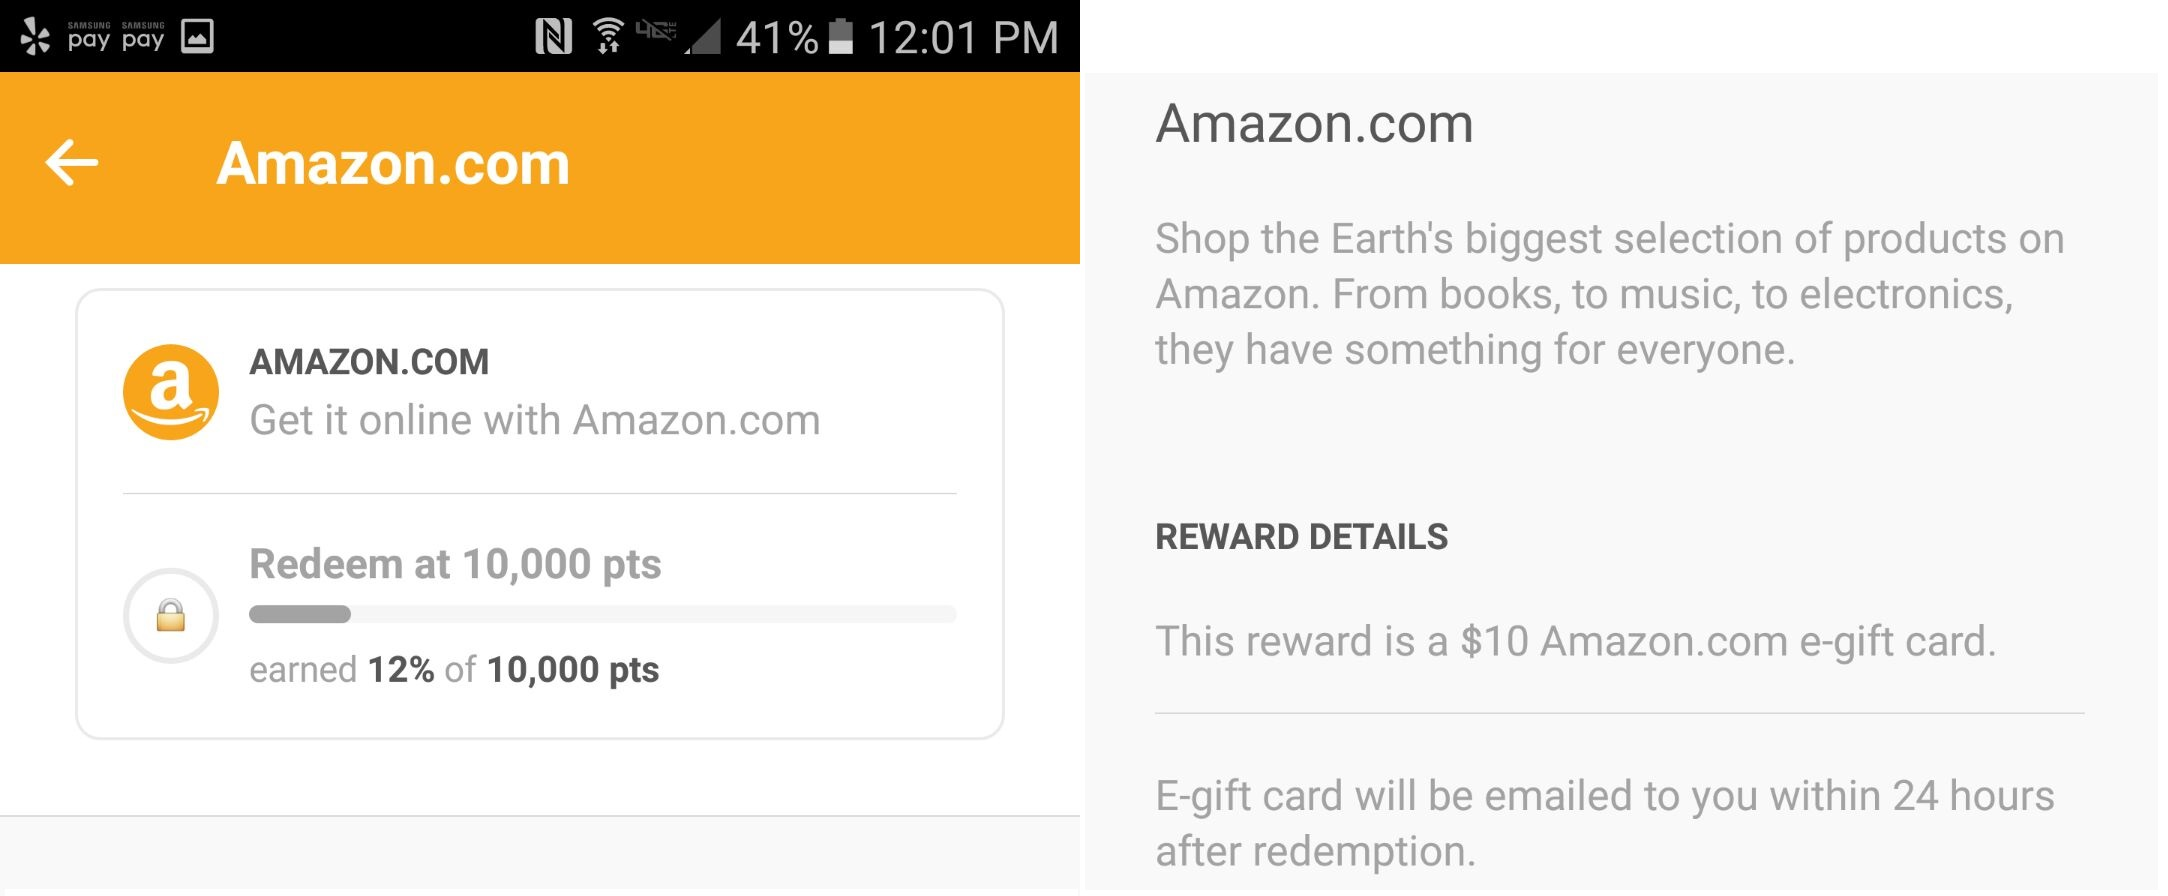 Can I Use Whole Foods Gift Card On Amazon